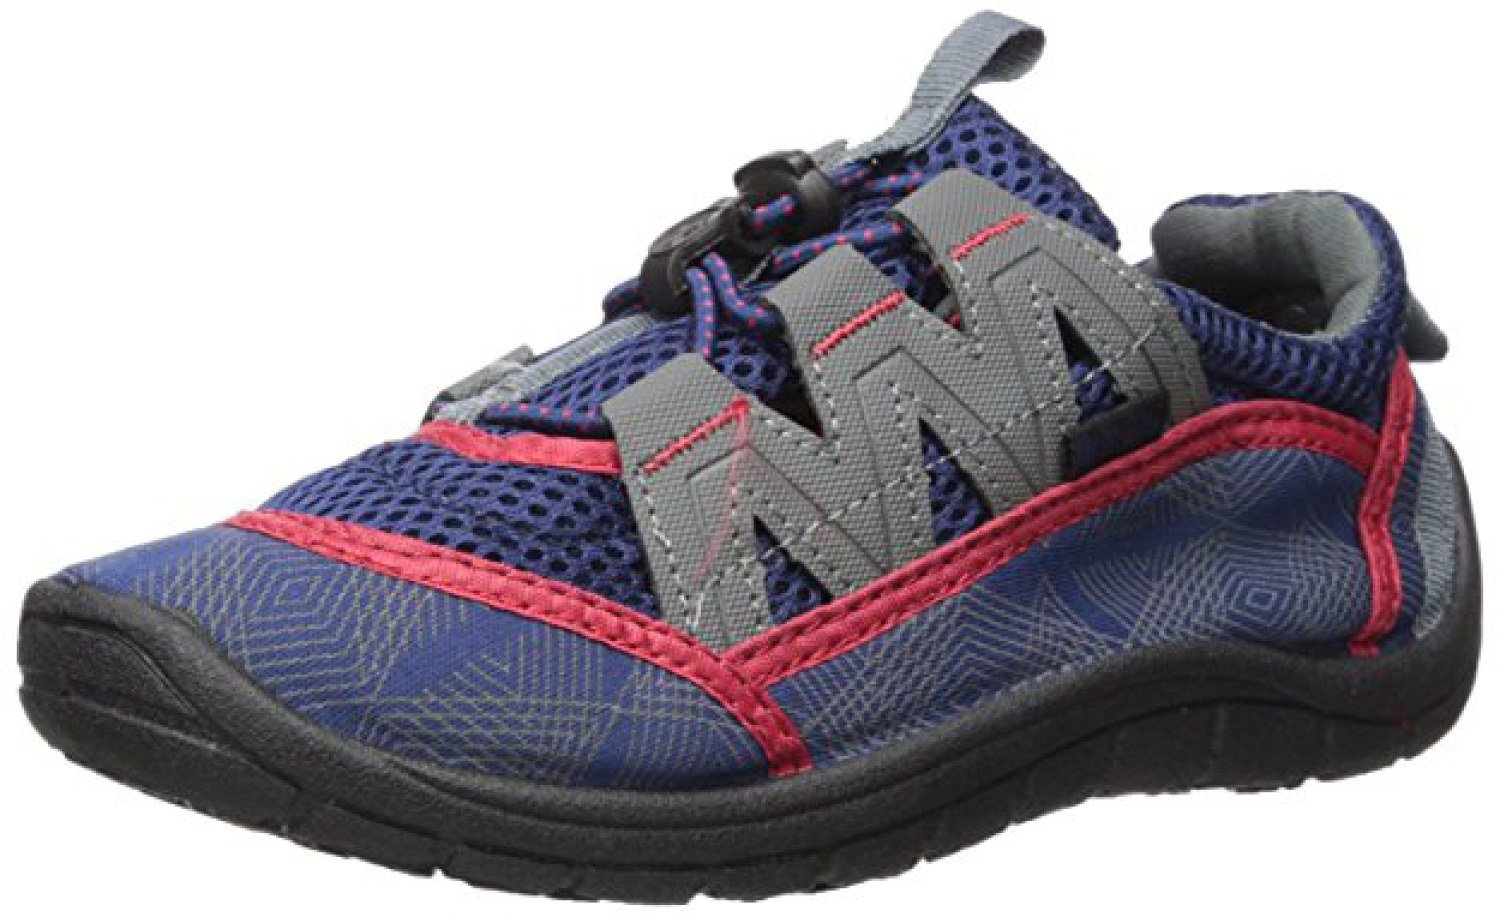 Northside Kid's Brille II Summer Water Shoe, Navy/Red, 10 M US Toddler; with a Waterproof Wet Dry Bag